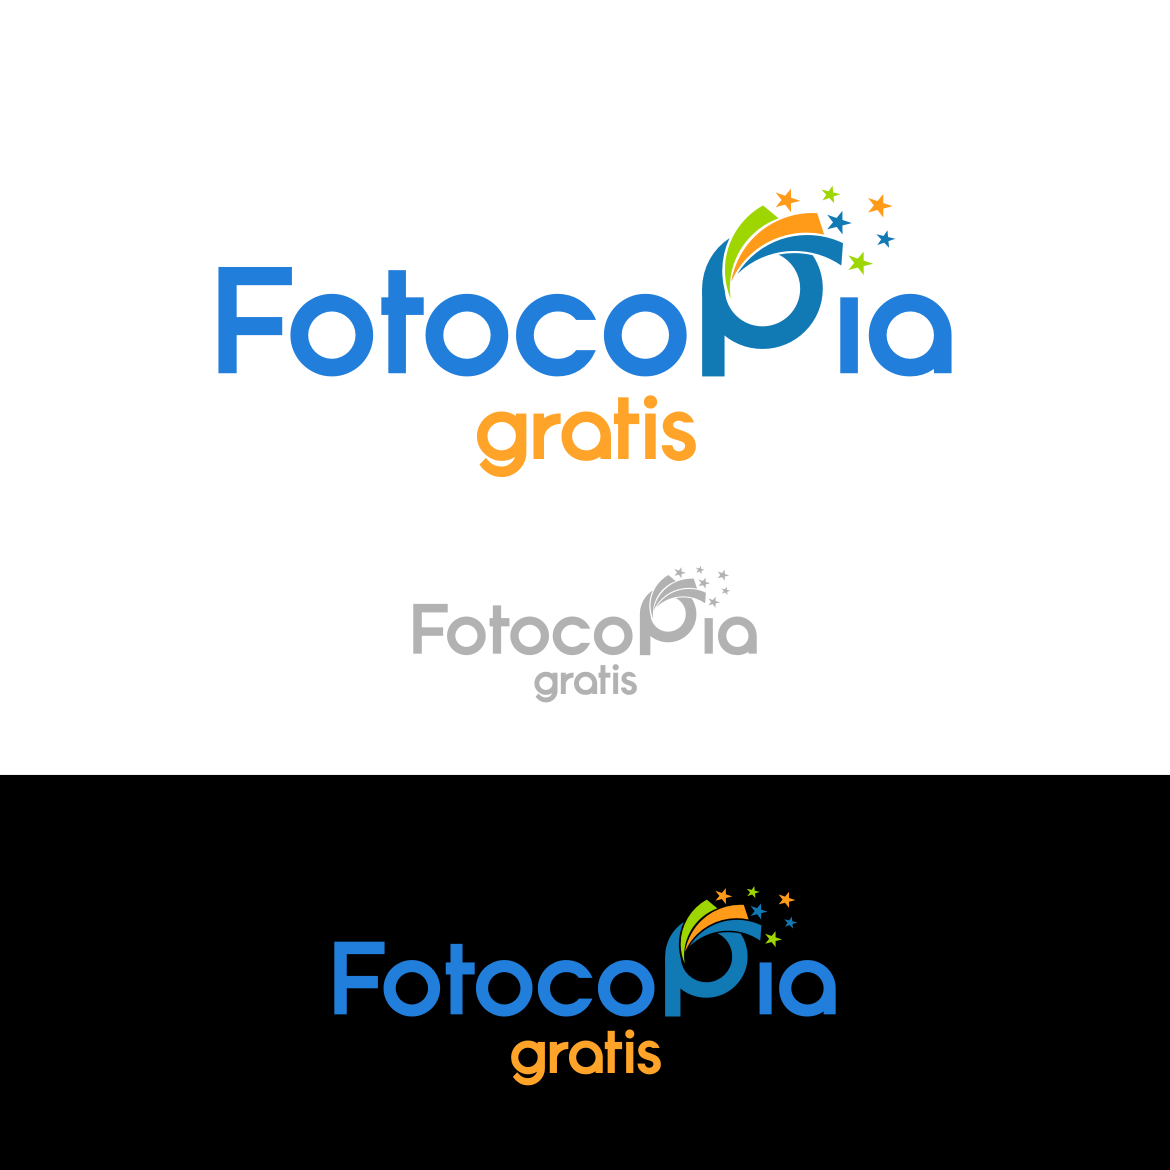 Logo Design by rifatz - Entry No. 227 in the Logo Design Contest Inspiring Logo Design for Fotocopiagratis.